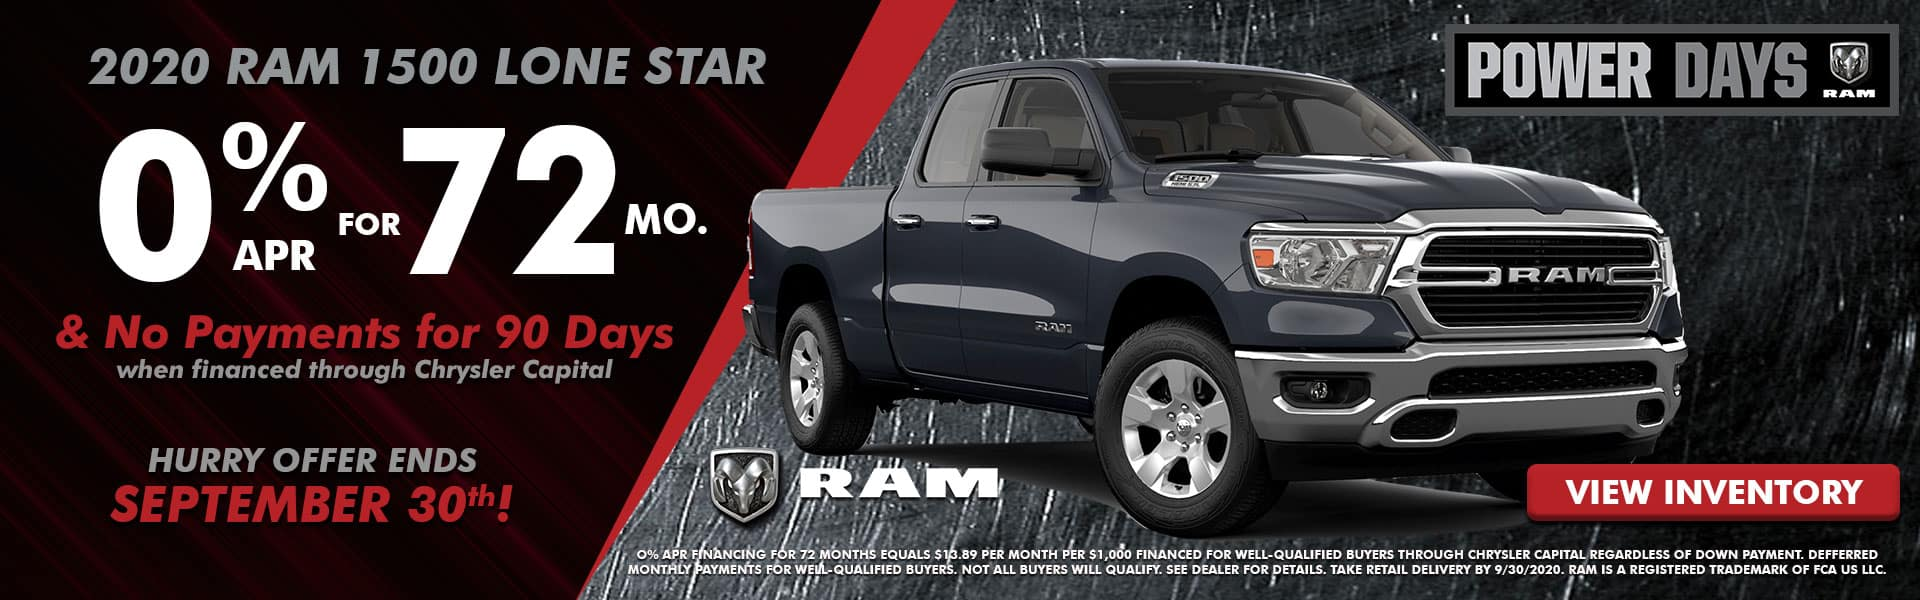 NMFOD Graphic – Web Banner (1920×600) – September National Offers – RAM 1500 Lone Star – 09.2020